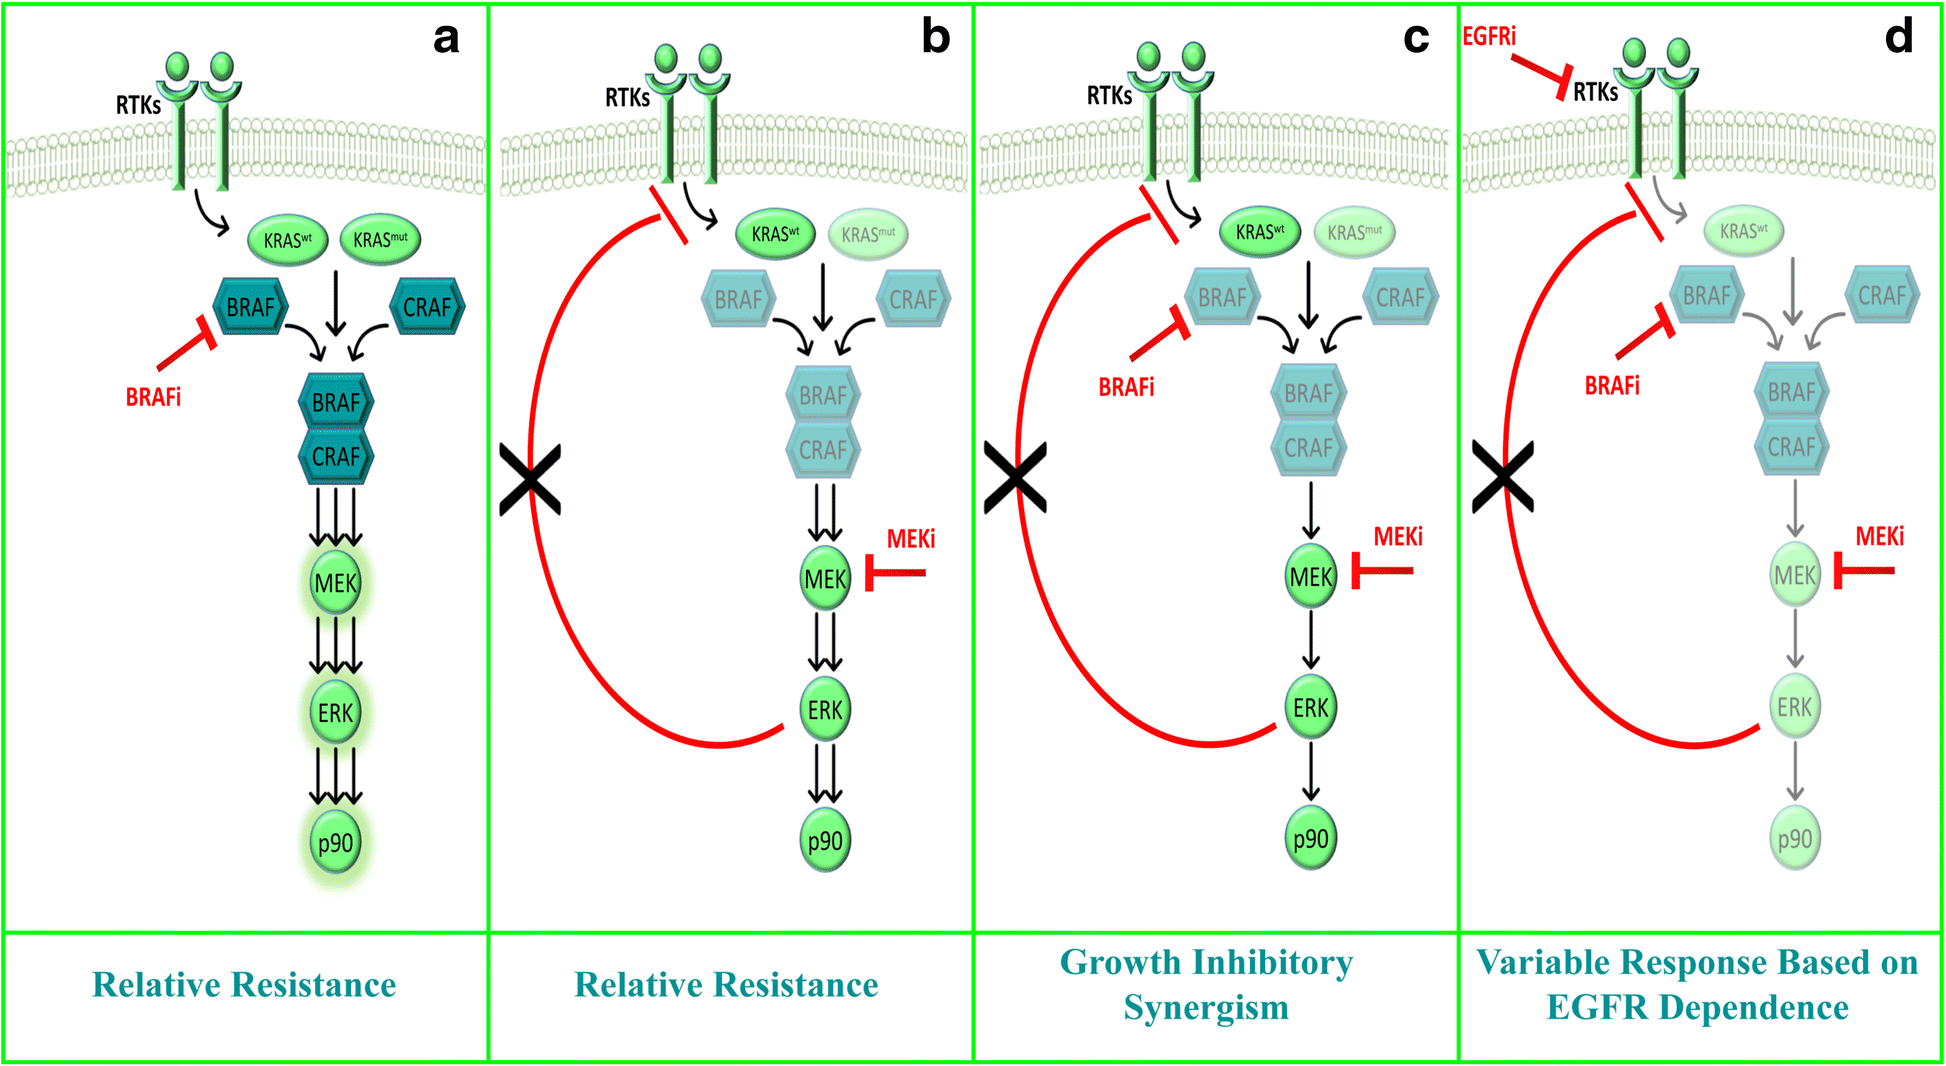 Combined c-MET and MEK inhibition results in apoptosis in